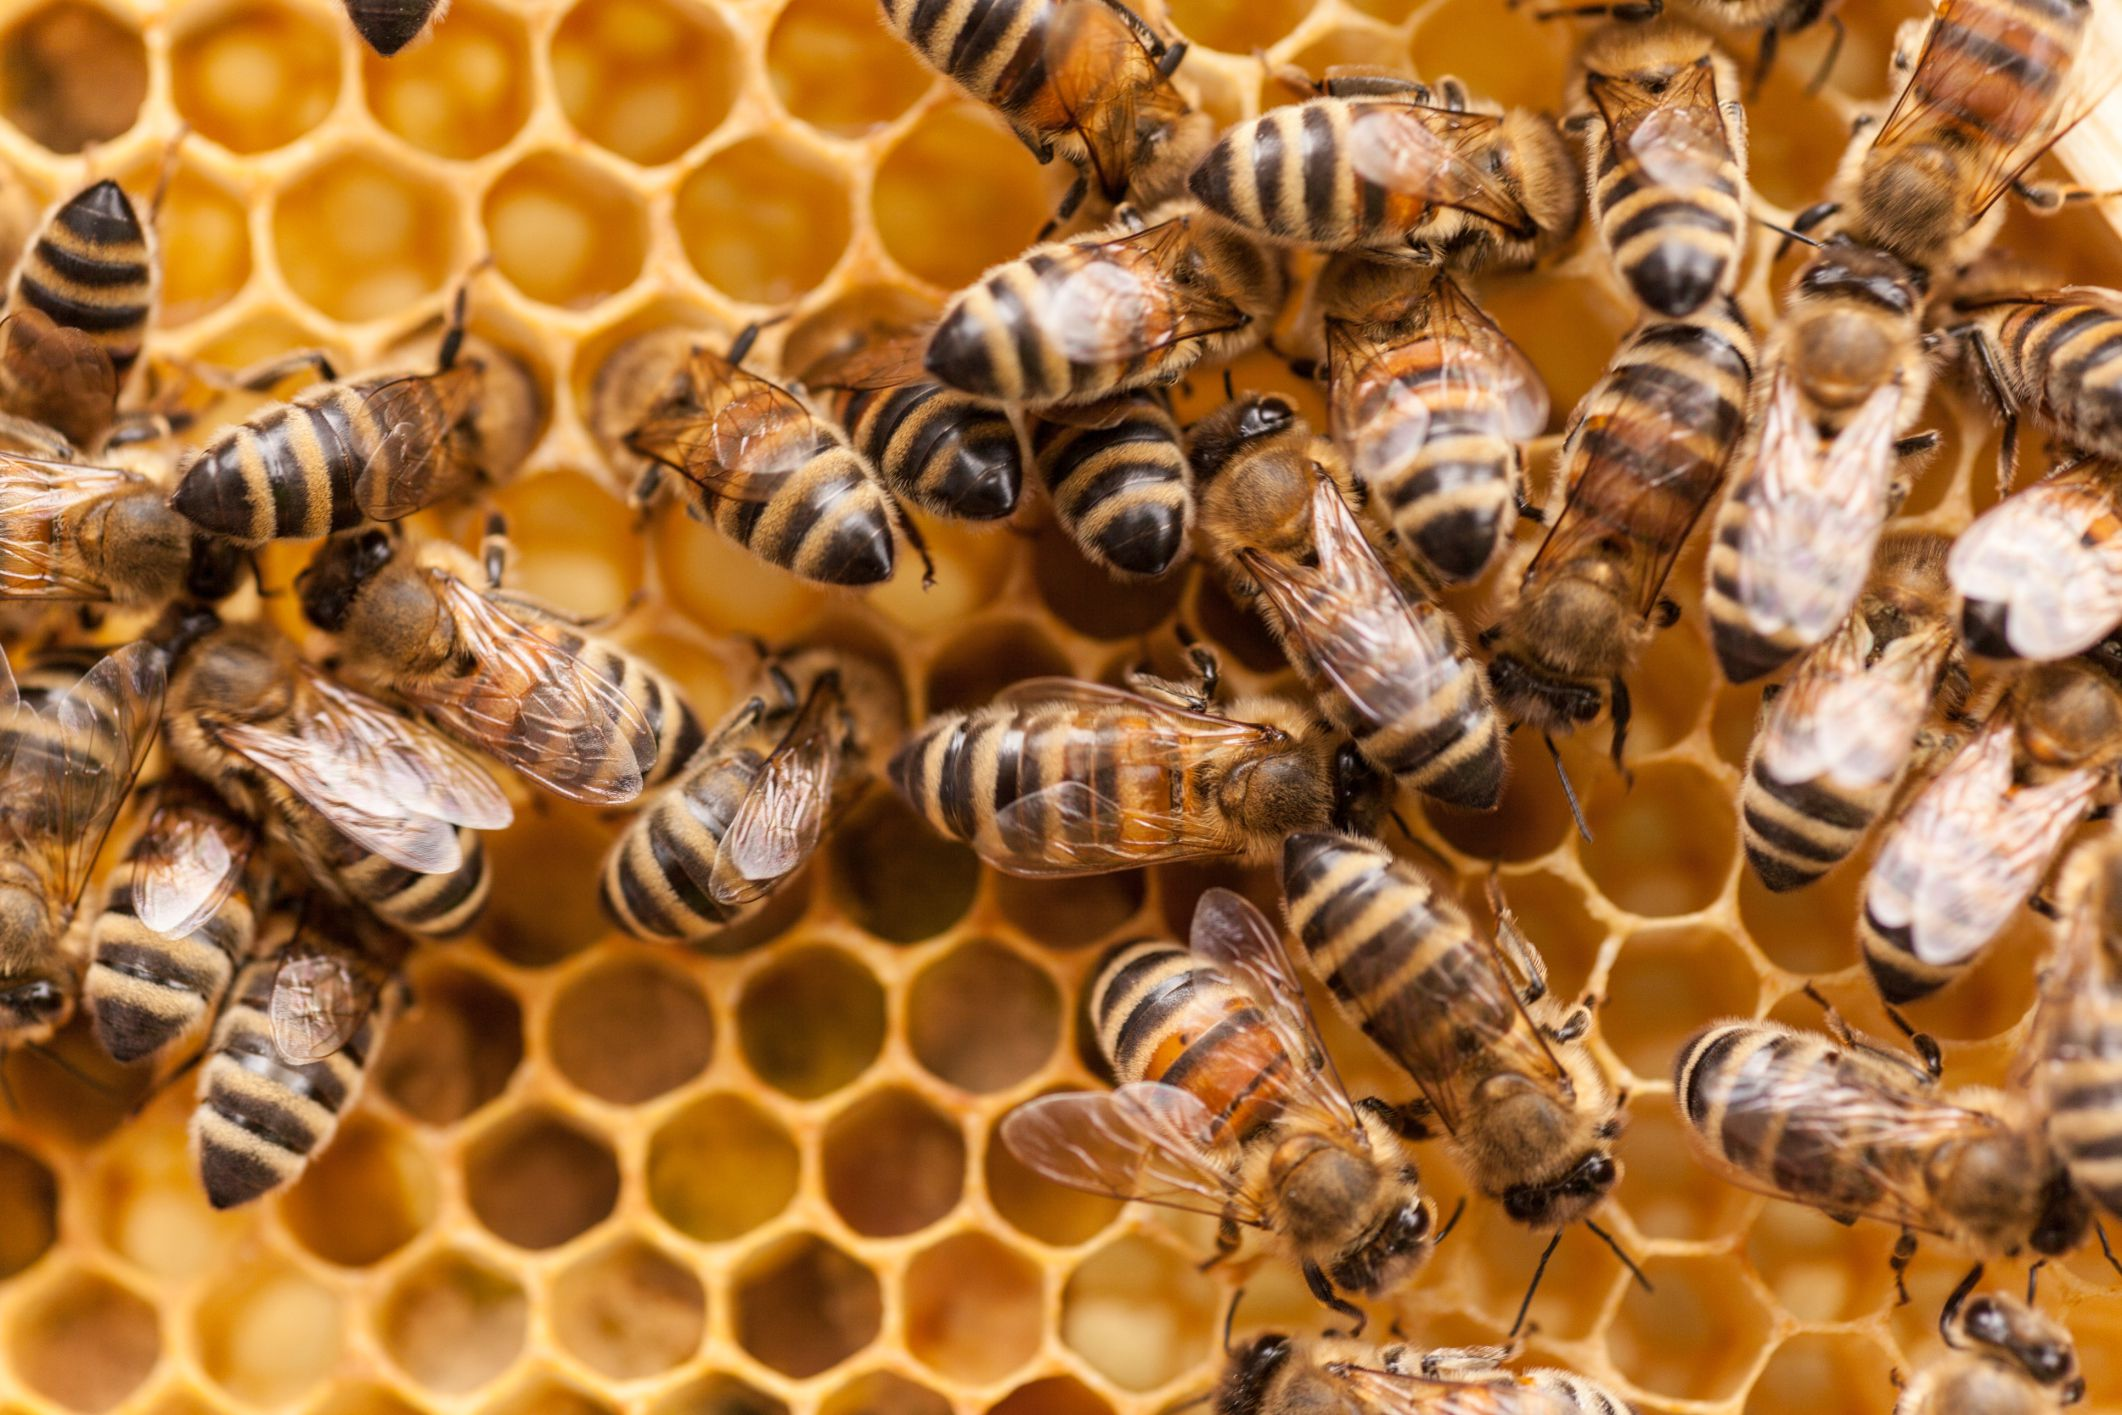 15 Fascinating Facts About Honey Bees